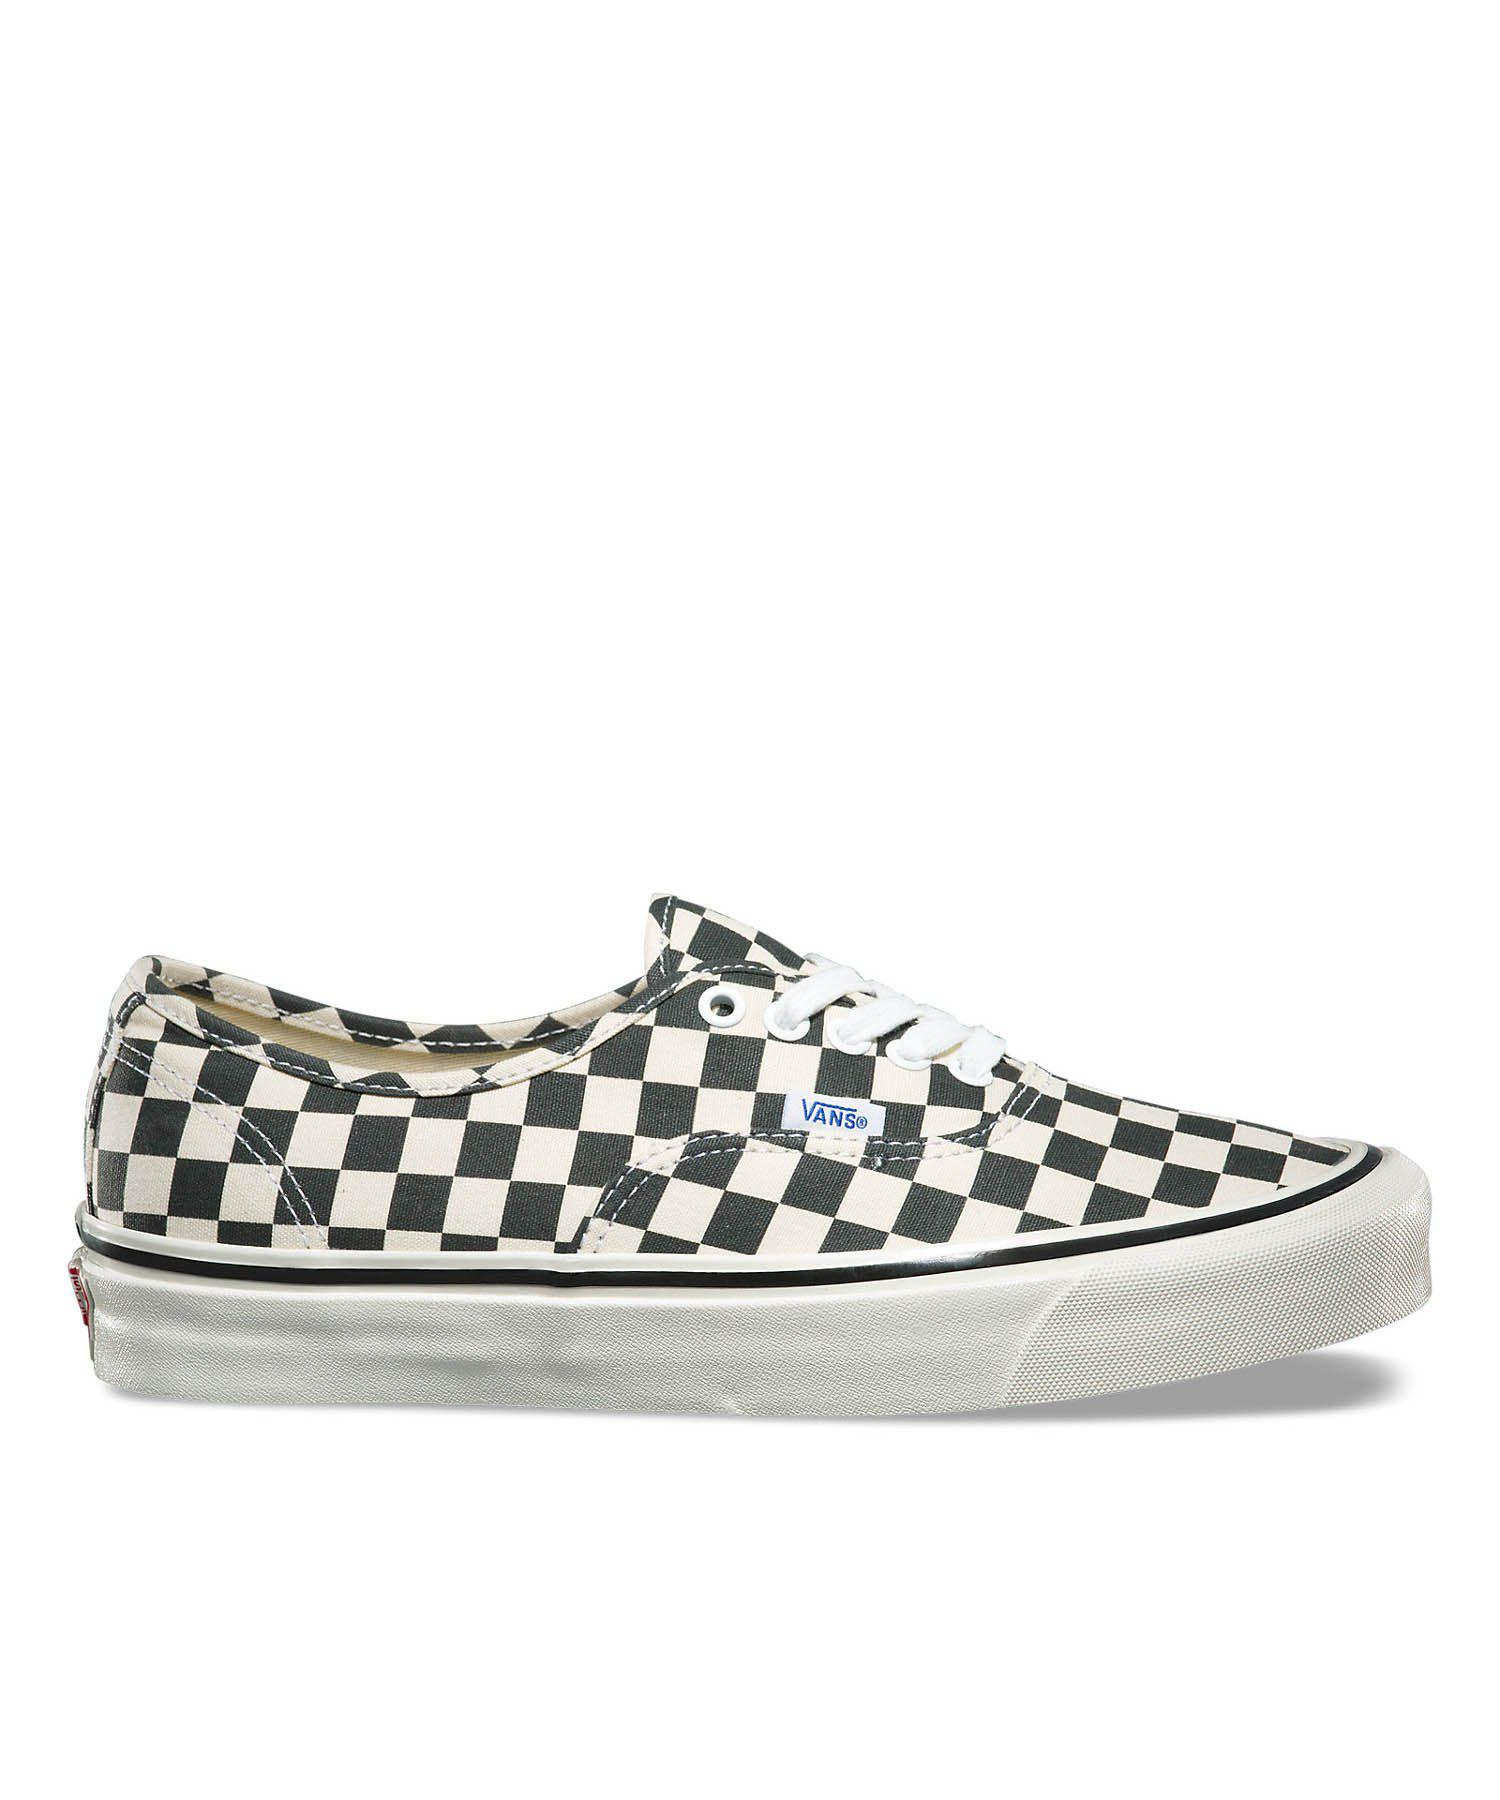 vans checkerboard authentic europe